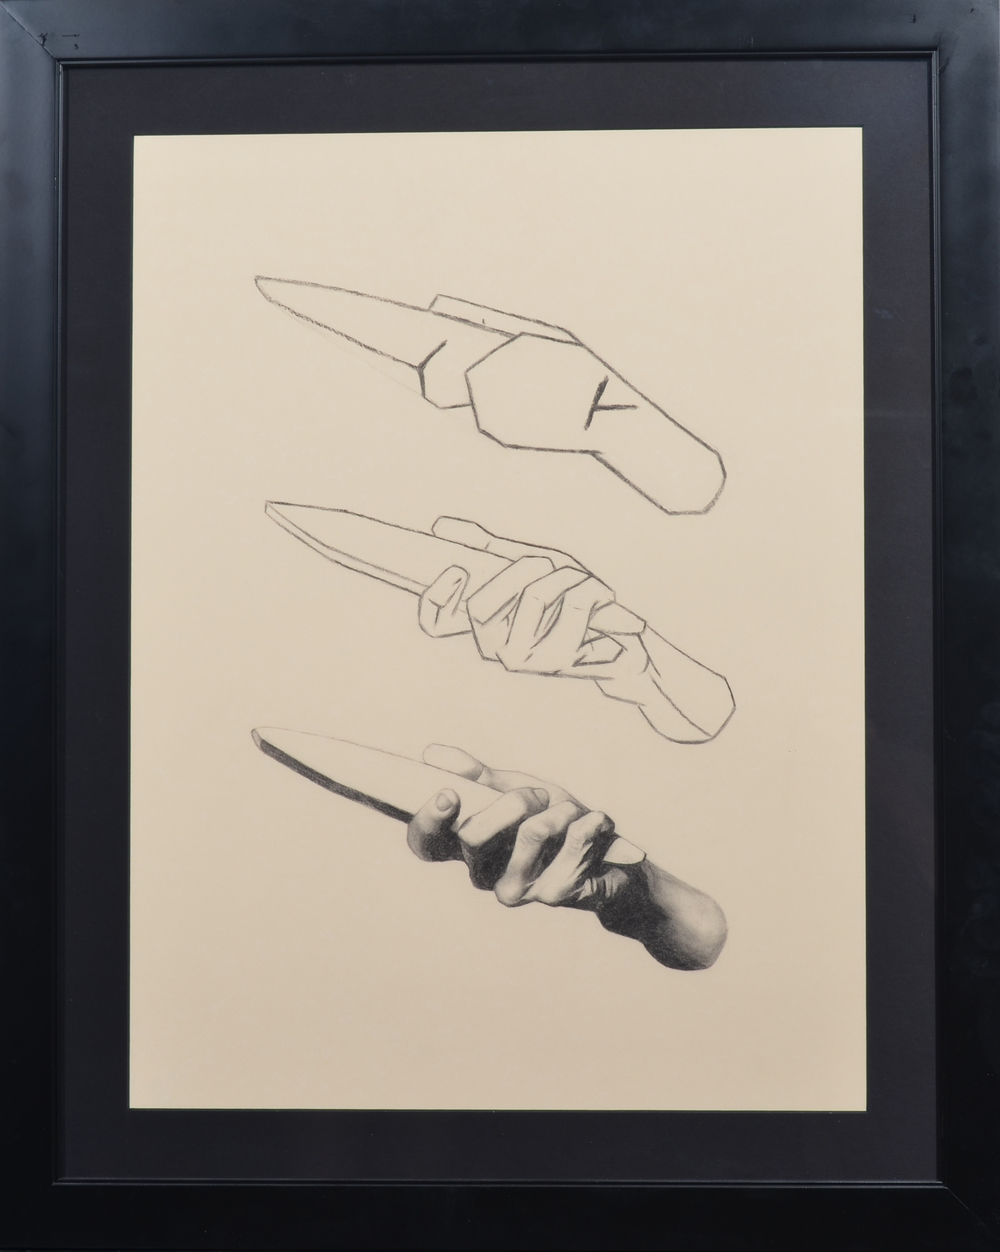 bargue_framed_hand_knife.jpg